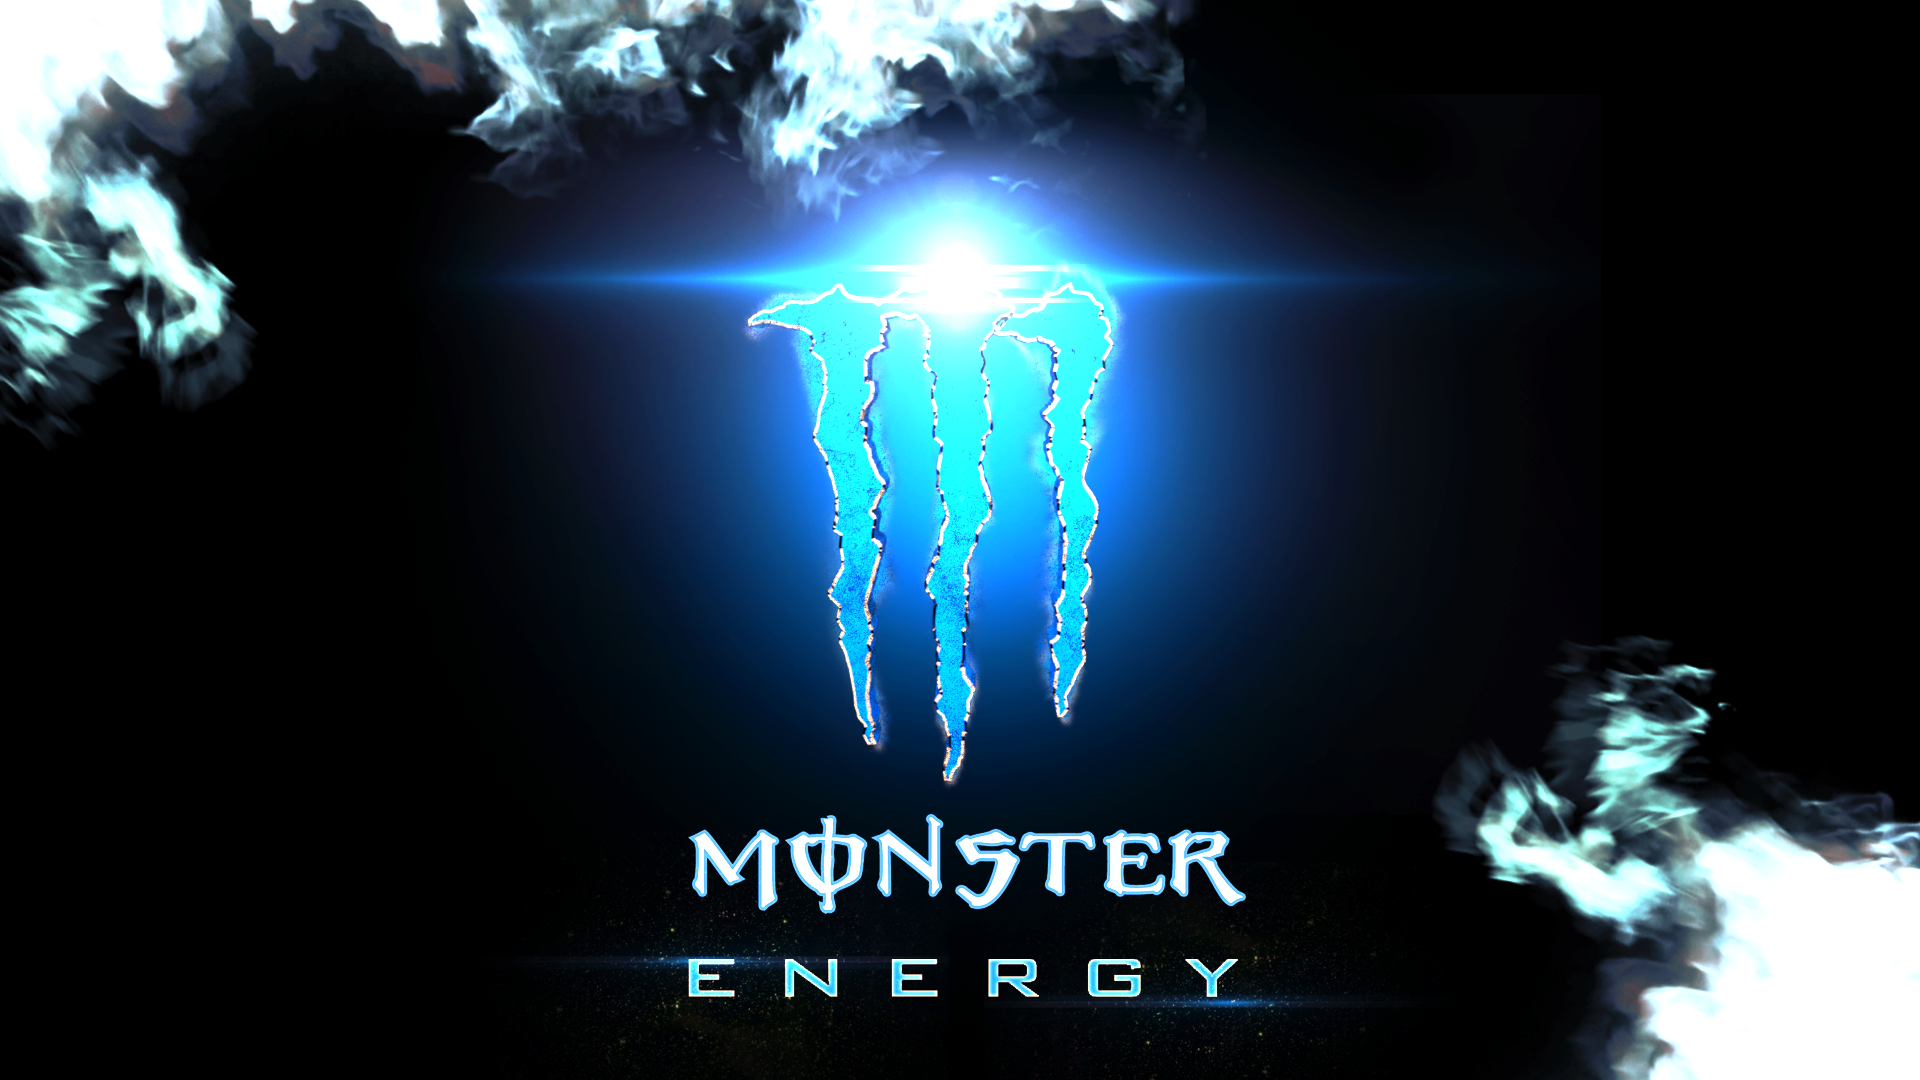 Monster Energy Desktop Wallpaper HD 1920x1080